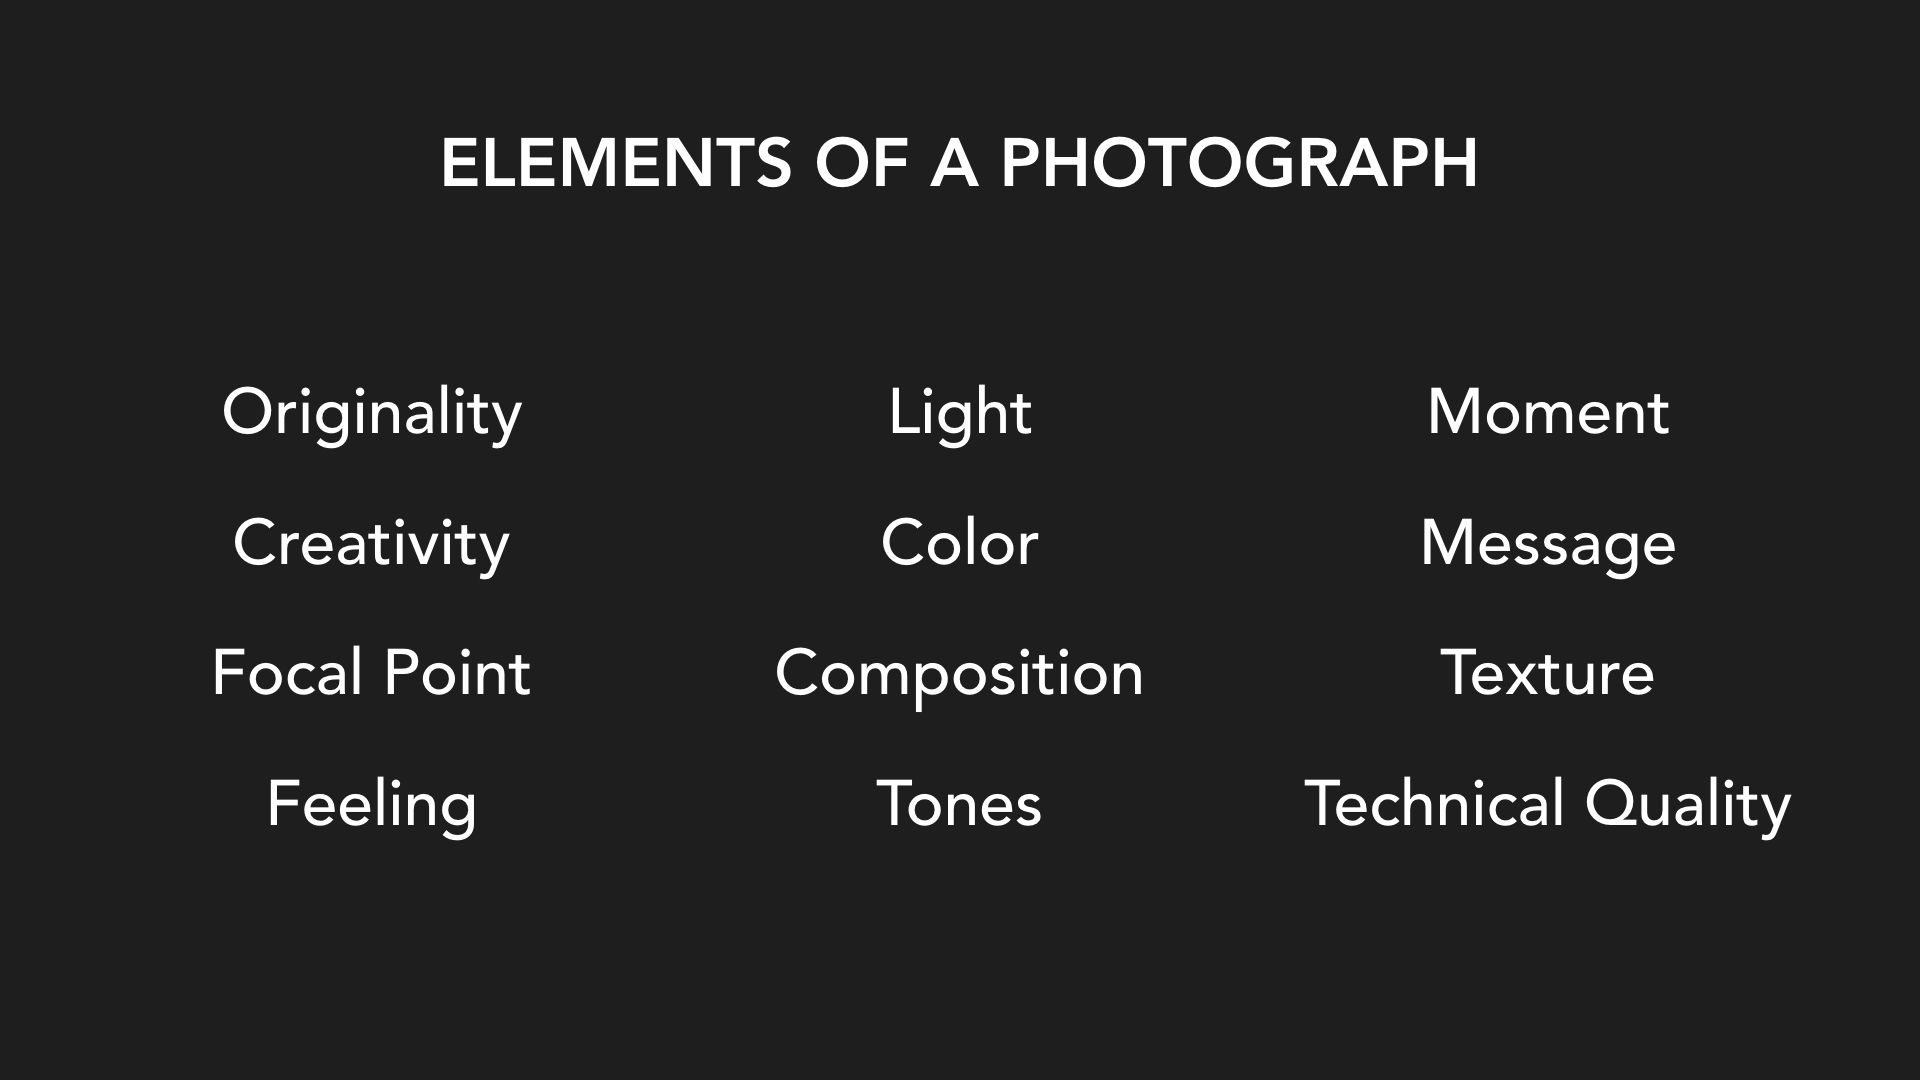 Elements of a Photograph